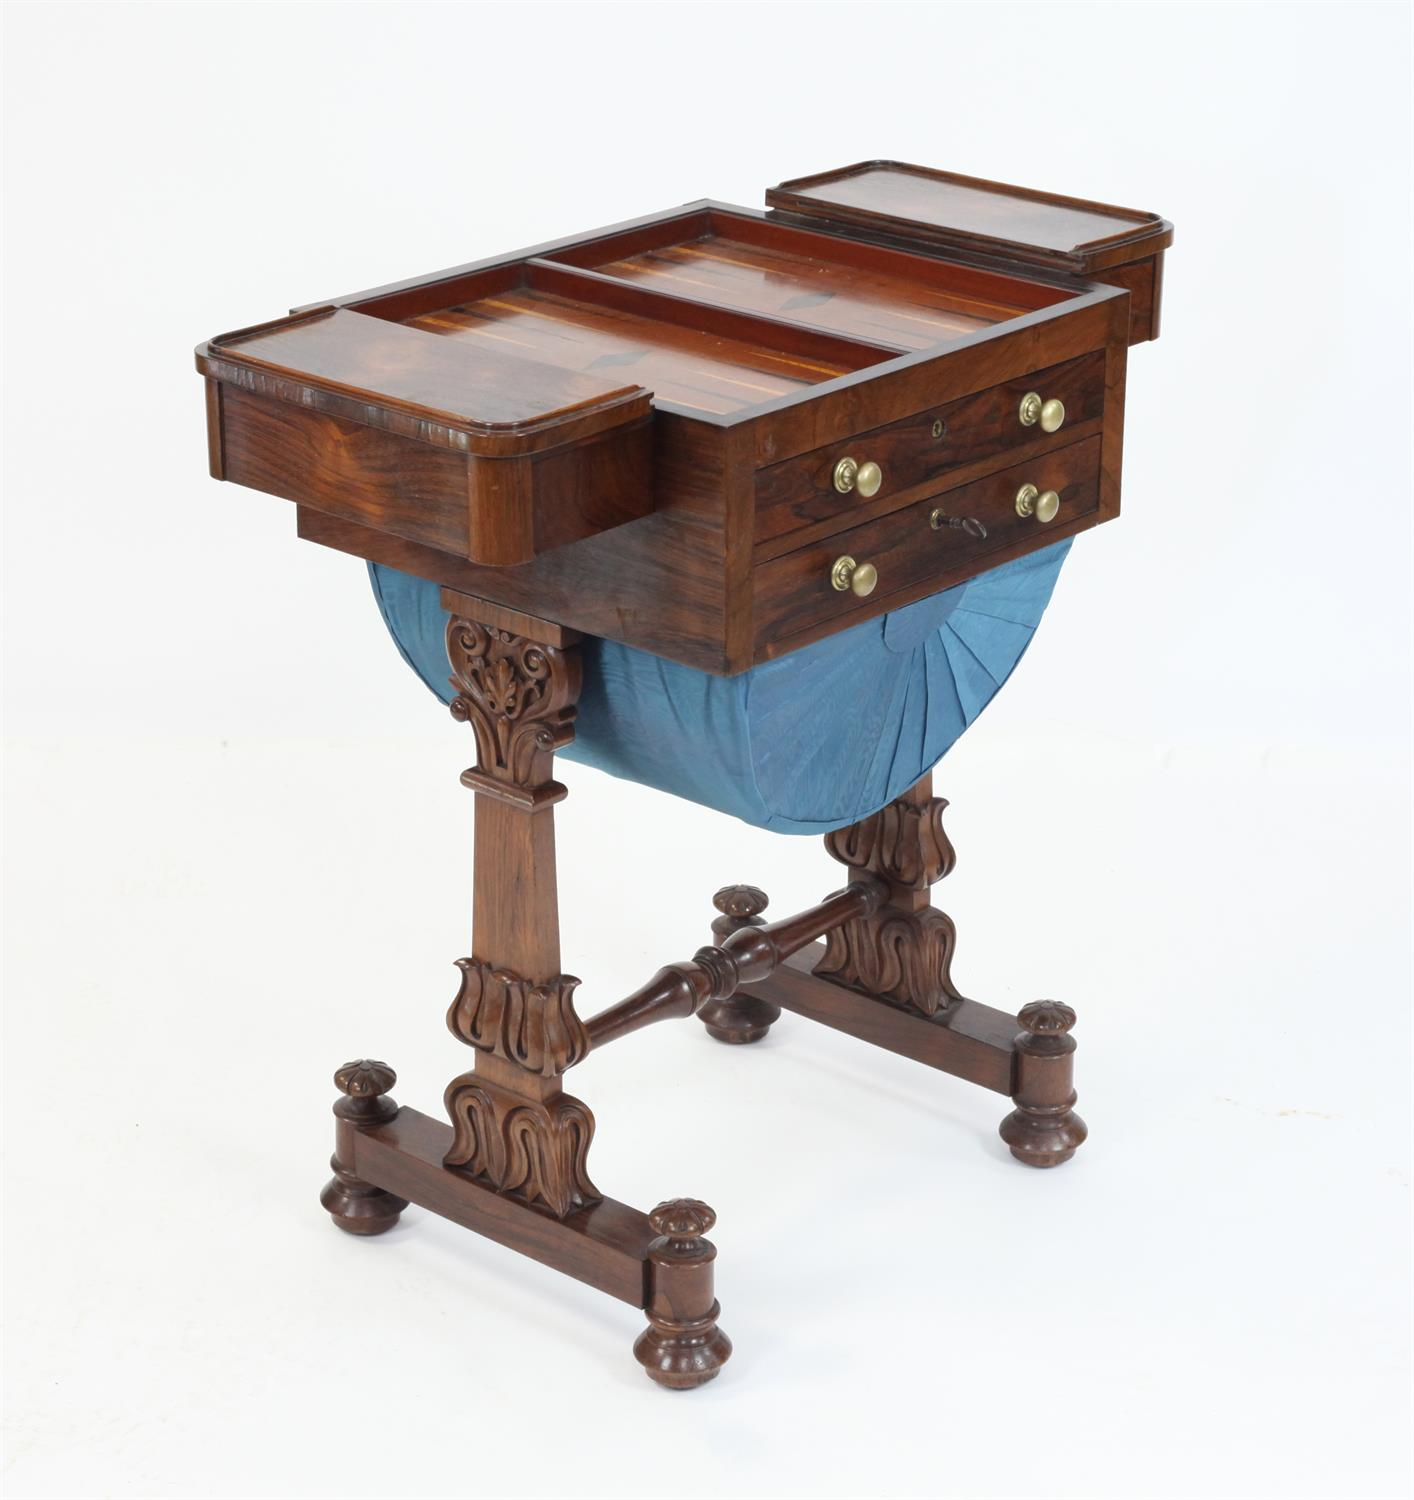 Early 19th Century rosewood games and work table with chessboard top flanked by drawers over - Image 5 of 5